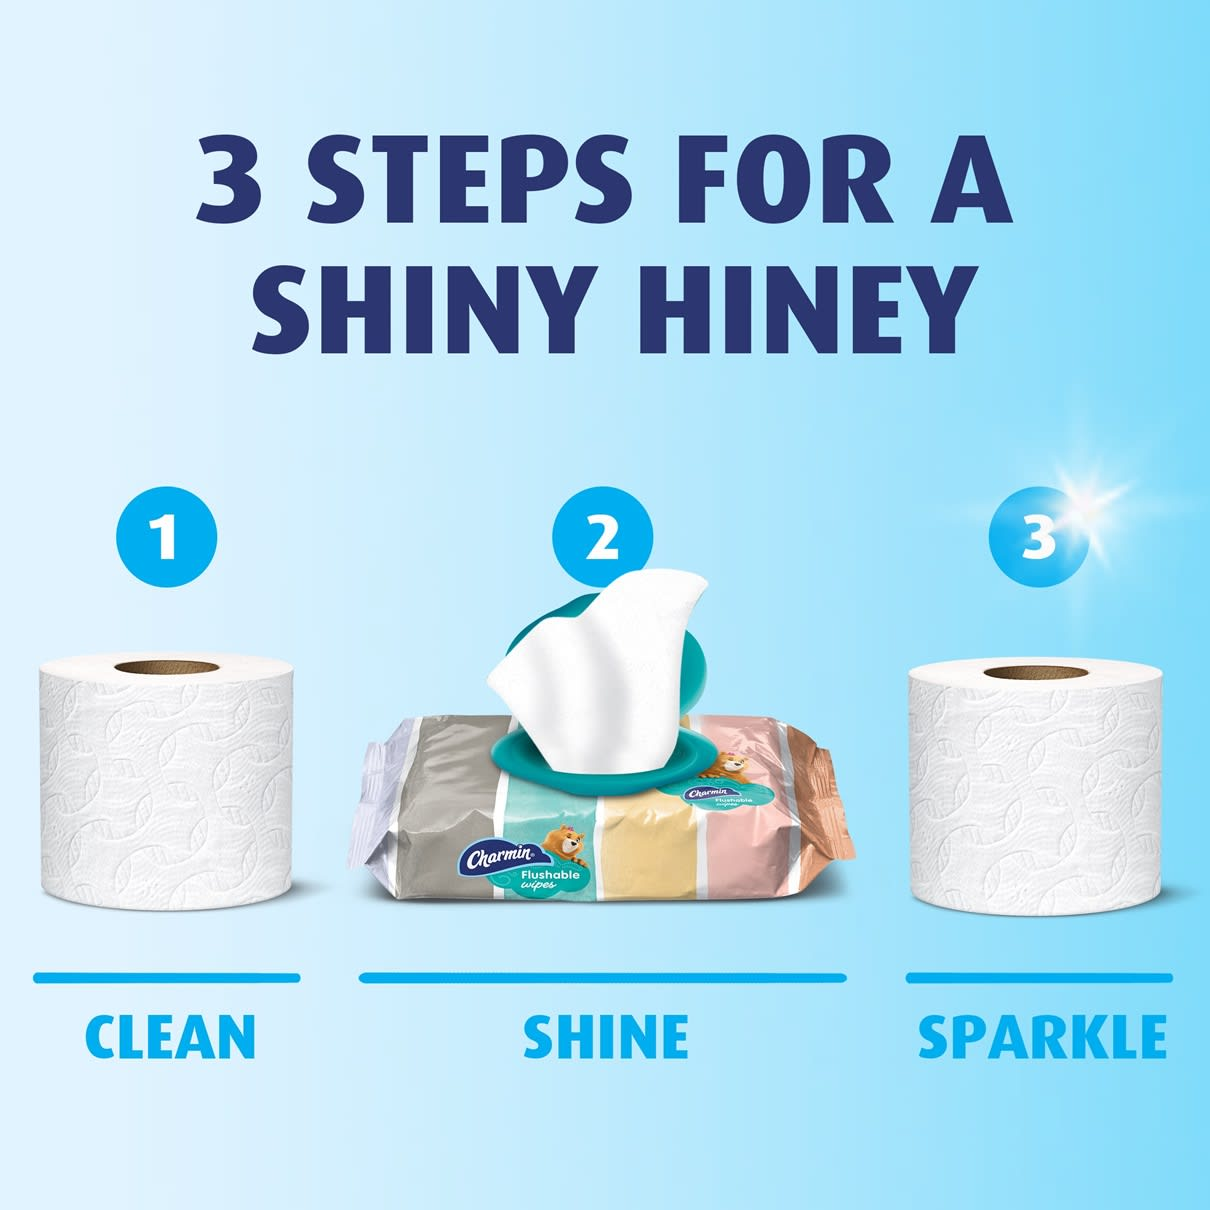 How to use toilet paper with flushable wipes for shiny hiney